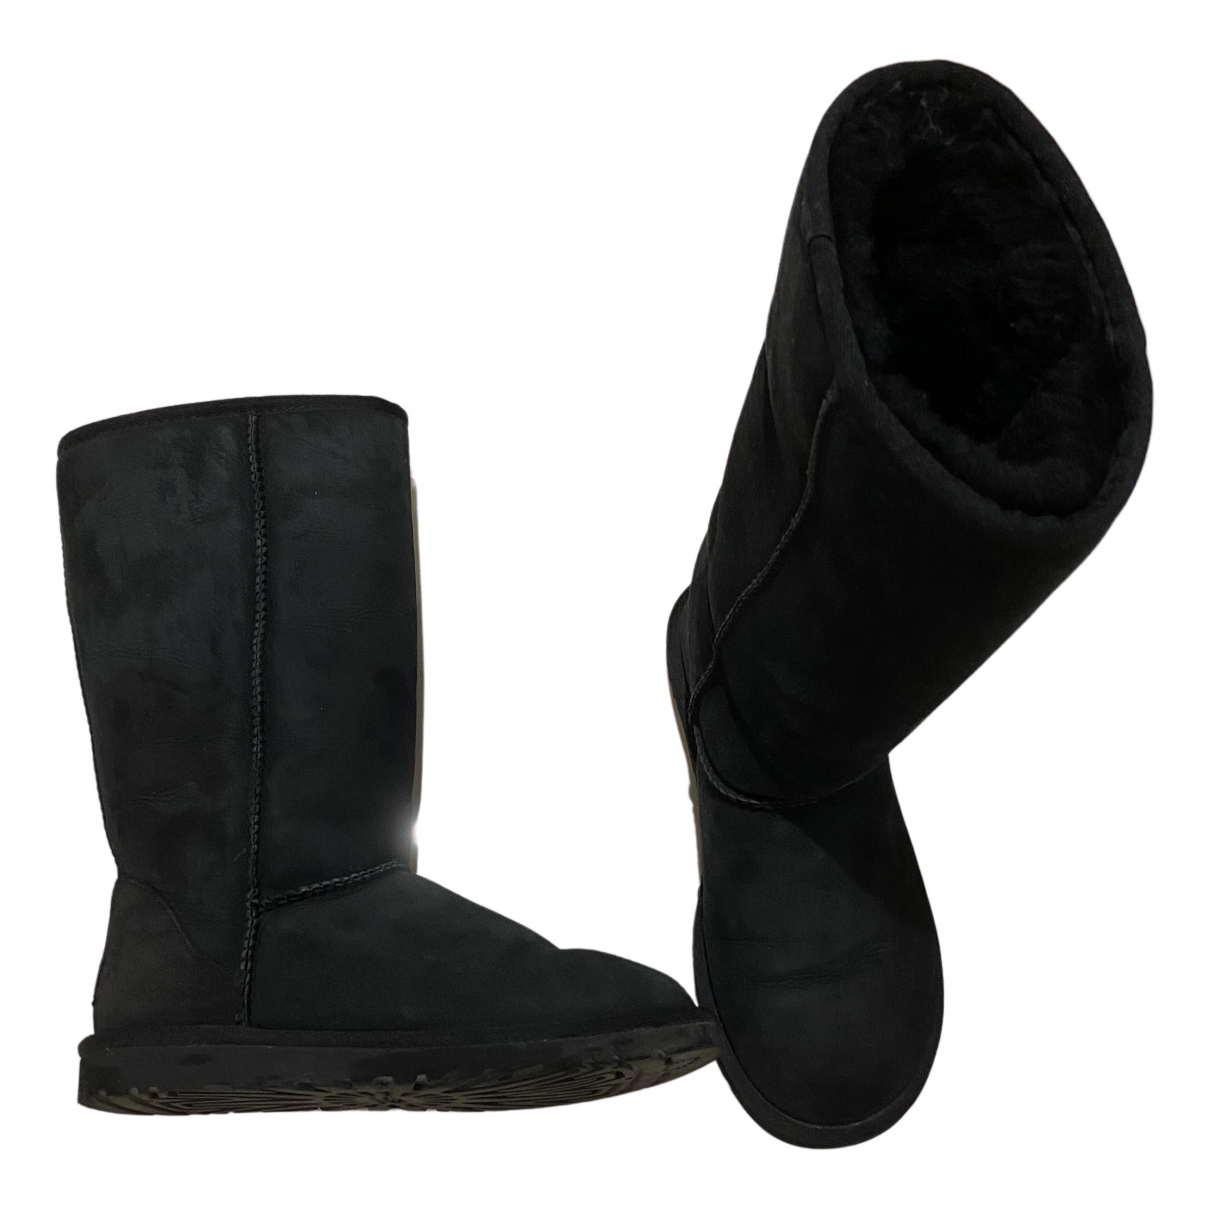 Ugg N Black Suede Boots for Women 36 EU